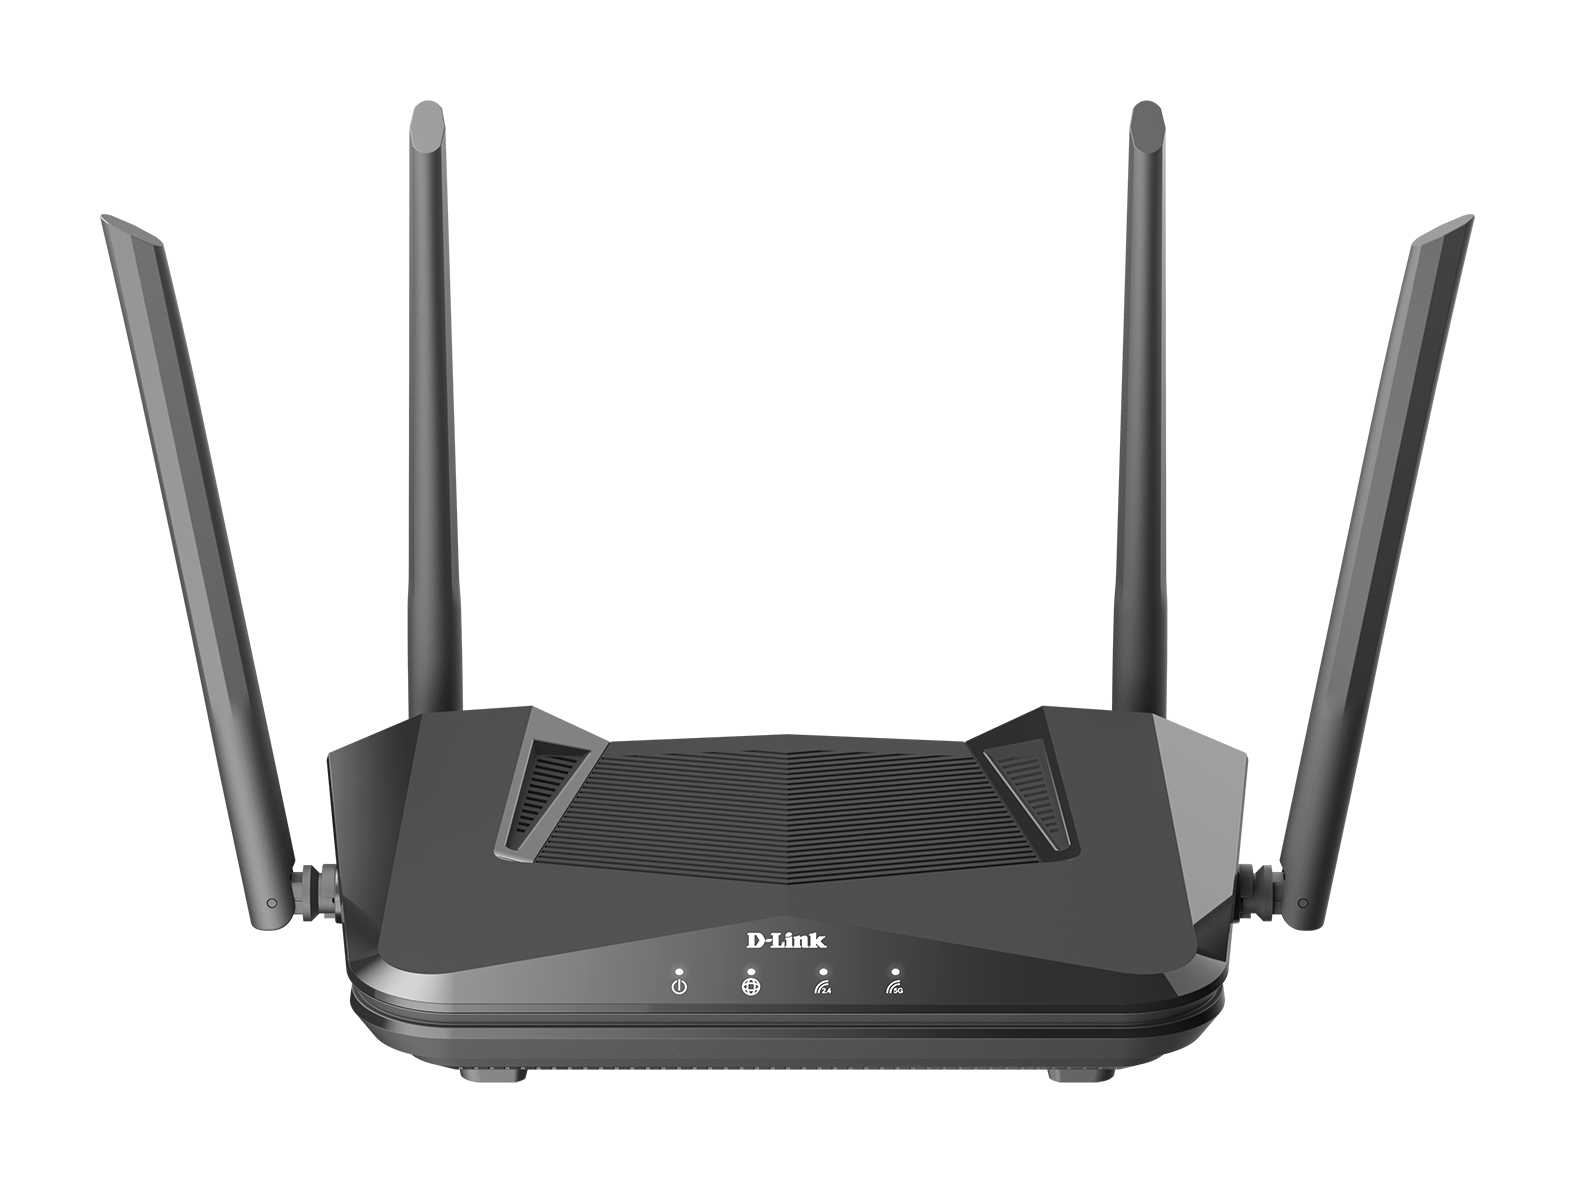 DIR-X1560 AX1500 Wi-Fi 6 Router - Front